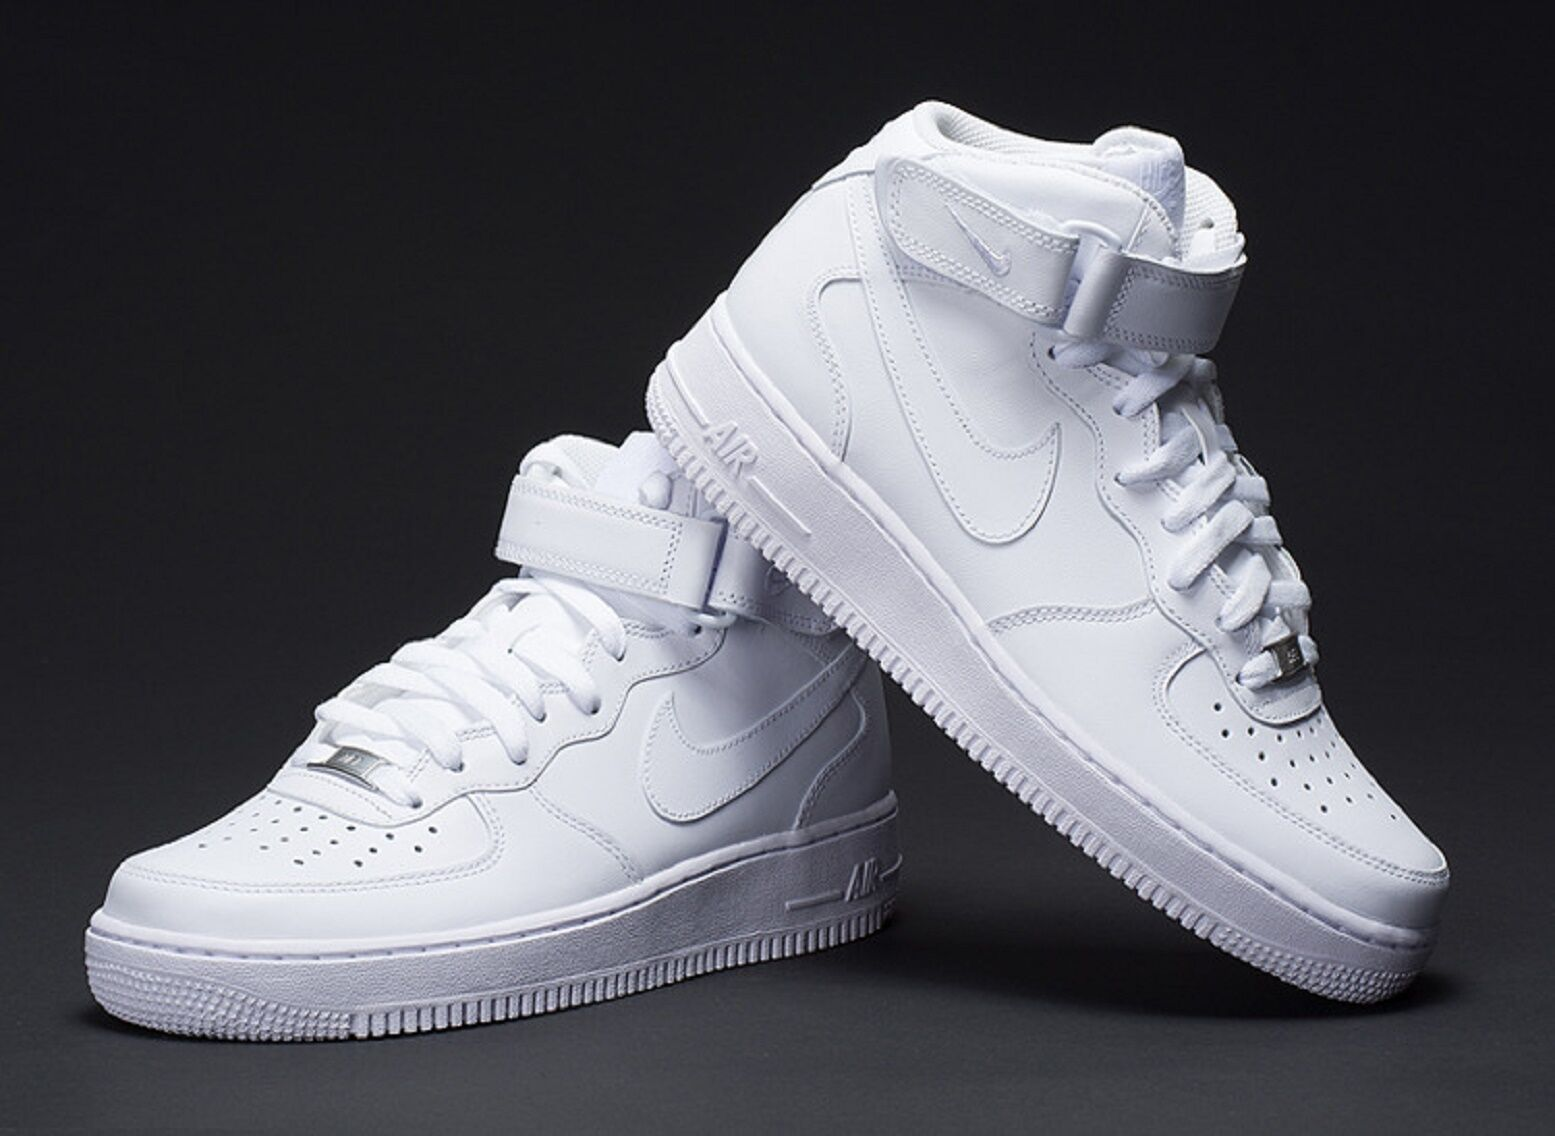 NIKE homme  NIKE AIR Obliger 1 blanc MID Baskets LIFESTYLE chaussures blanc 1 b23176